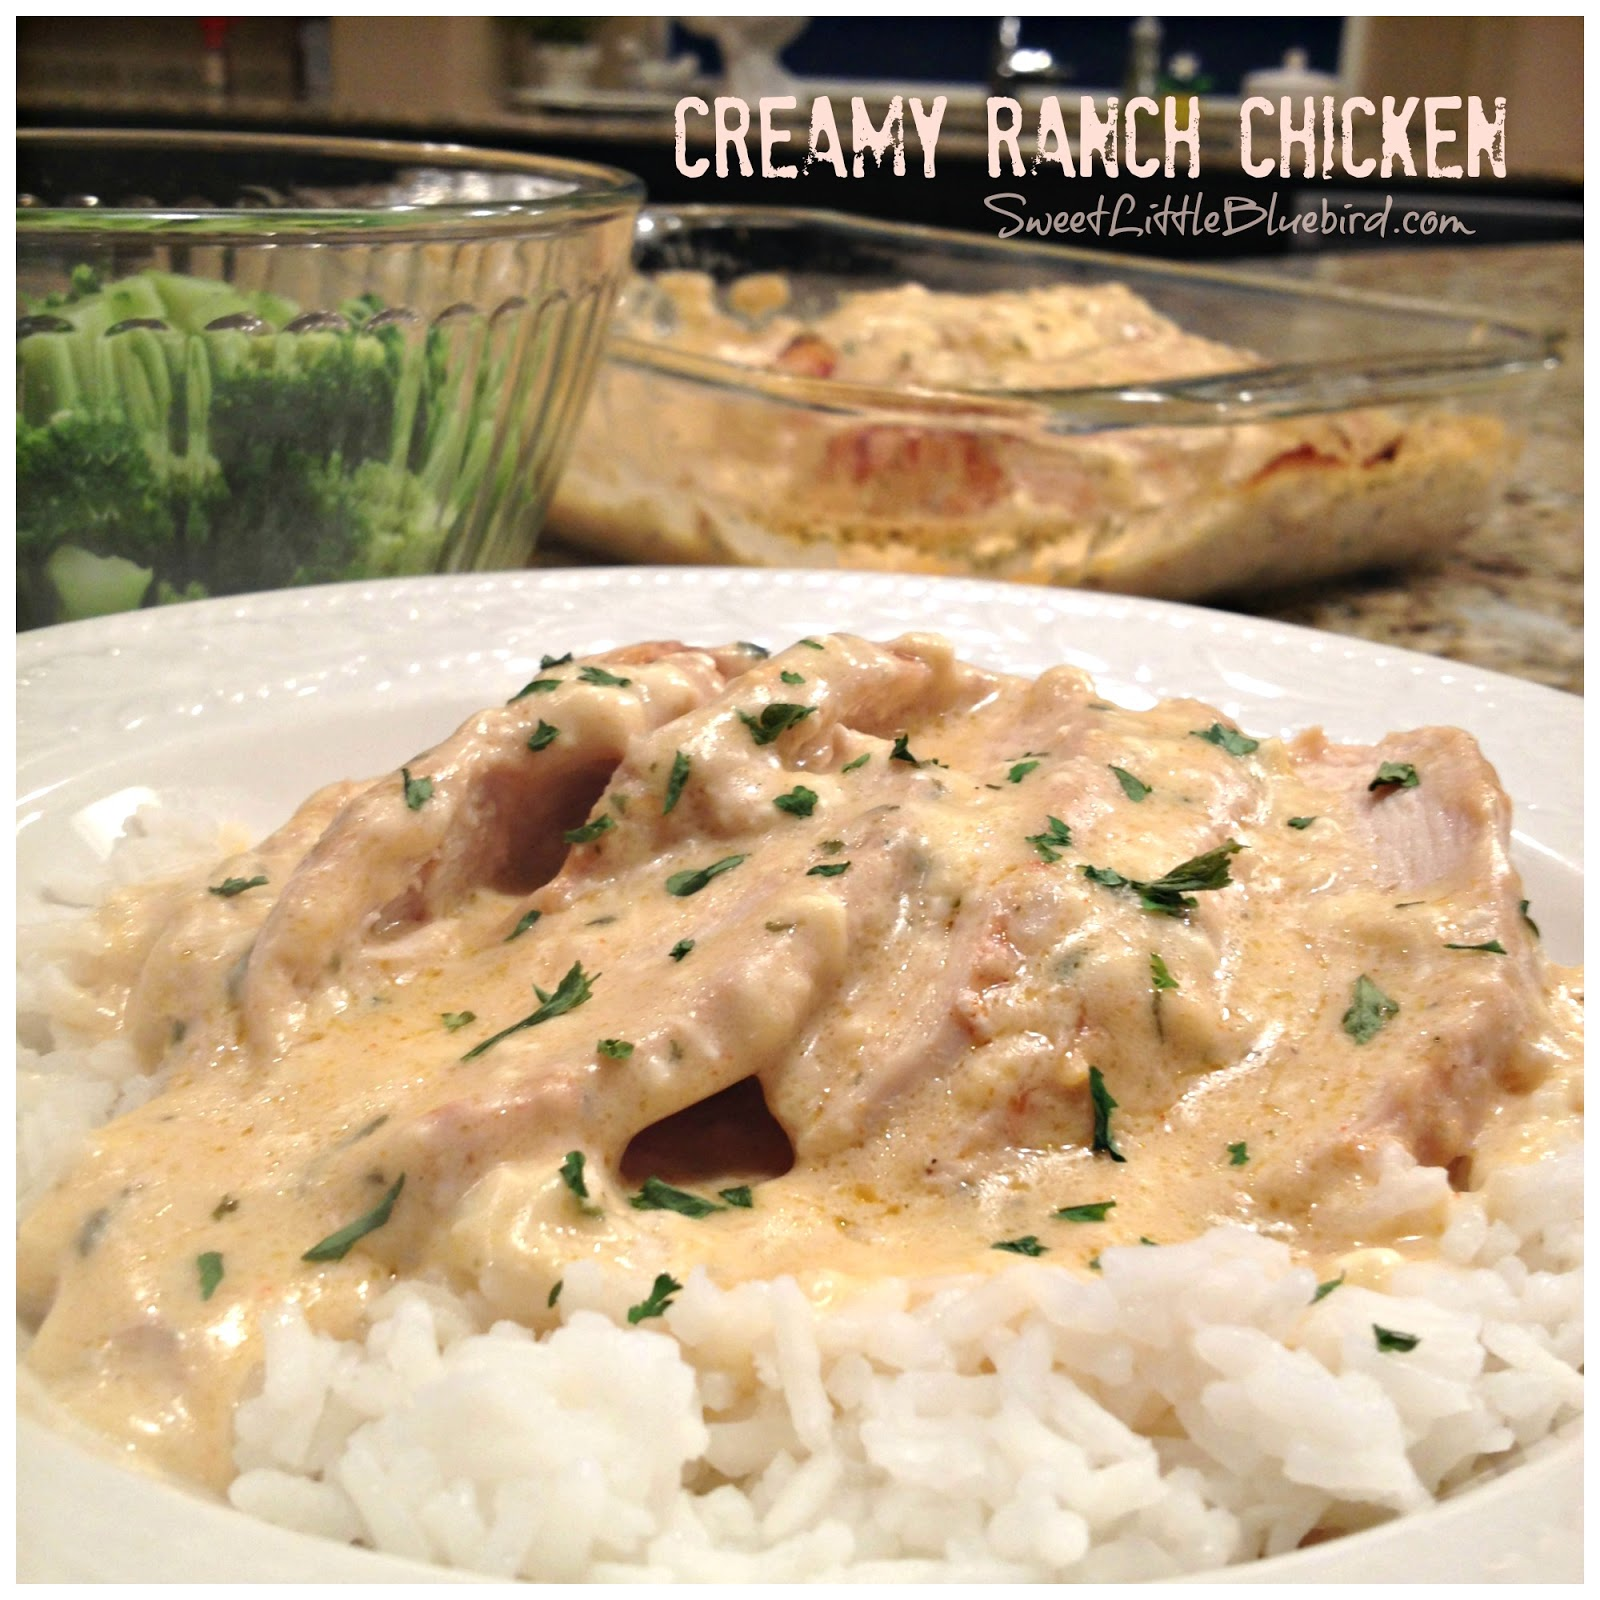 Chicken with ranch dressing packet recipe